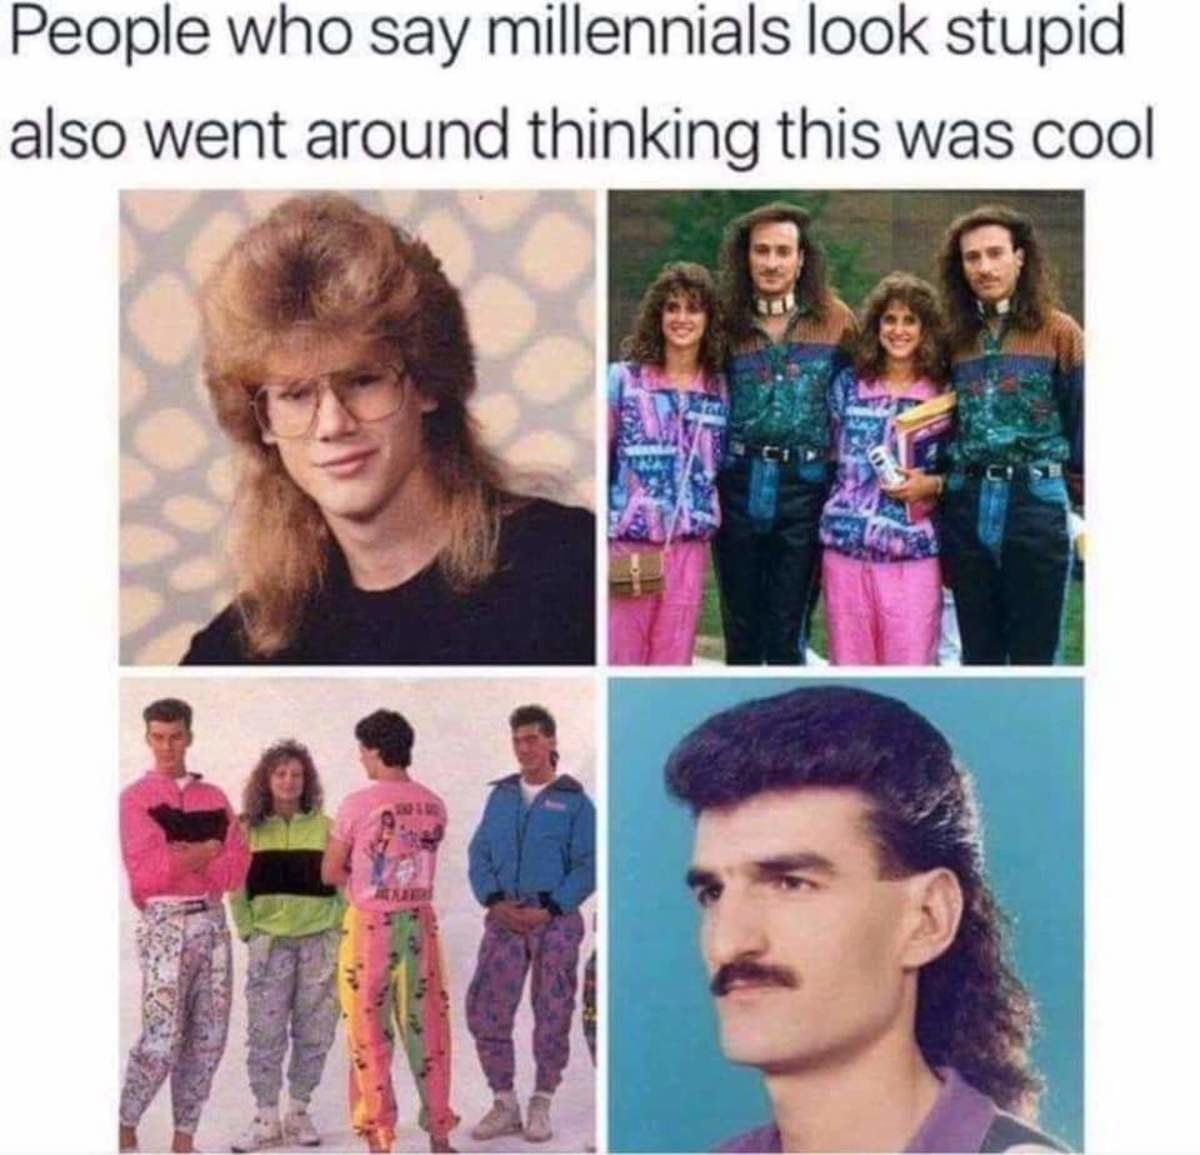 circle of life. .. Here's an eldrich emalgamation of both eras Where is your god now?! Also don't be dissin on the mullet - business in the front, party in the back !